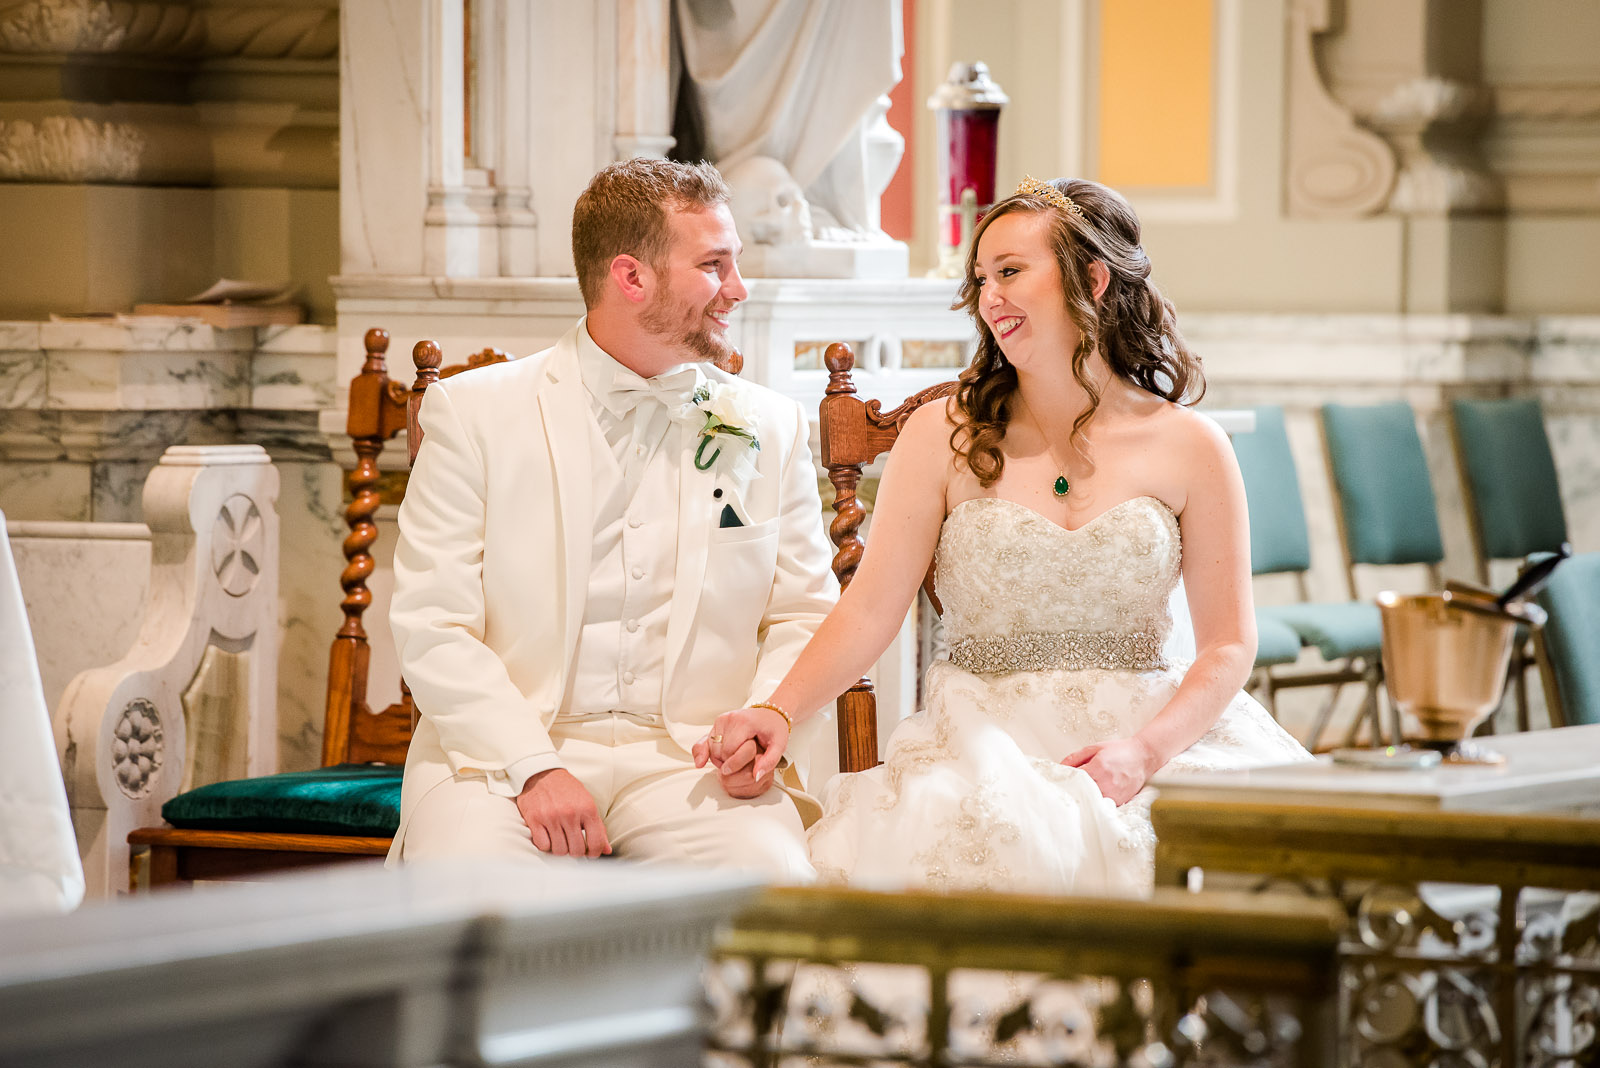 Eric_and_Christy_Photography_Blog_Wedding_Eva_Andrew-14